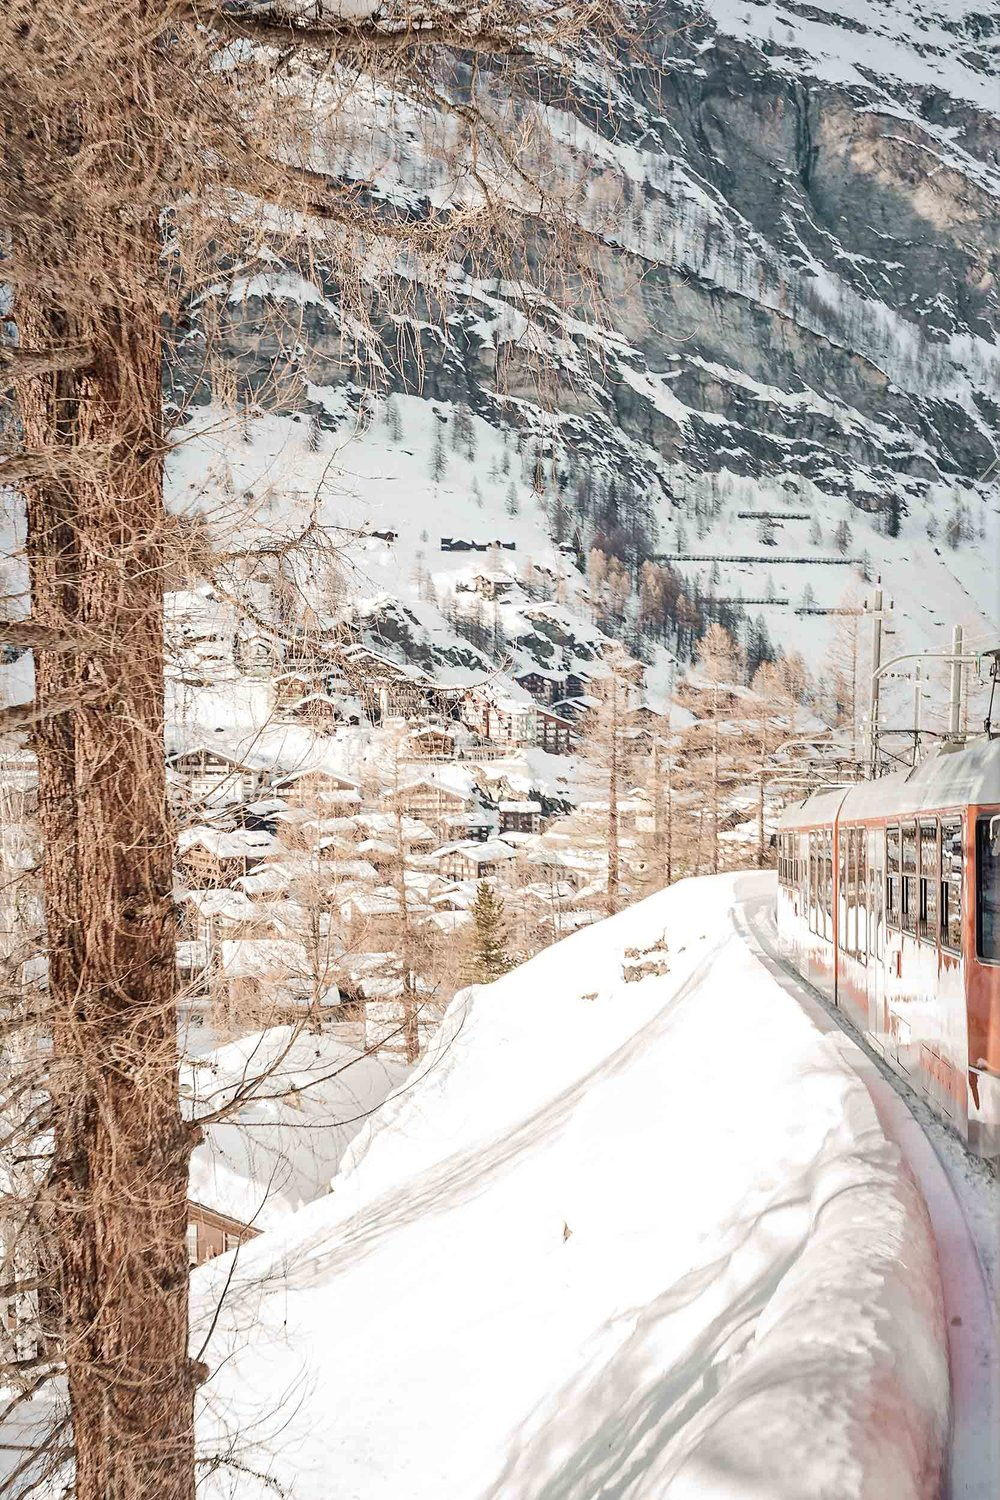 The beautiful train ride from Zermatt up to the mountains